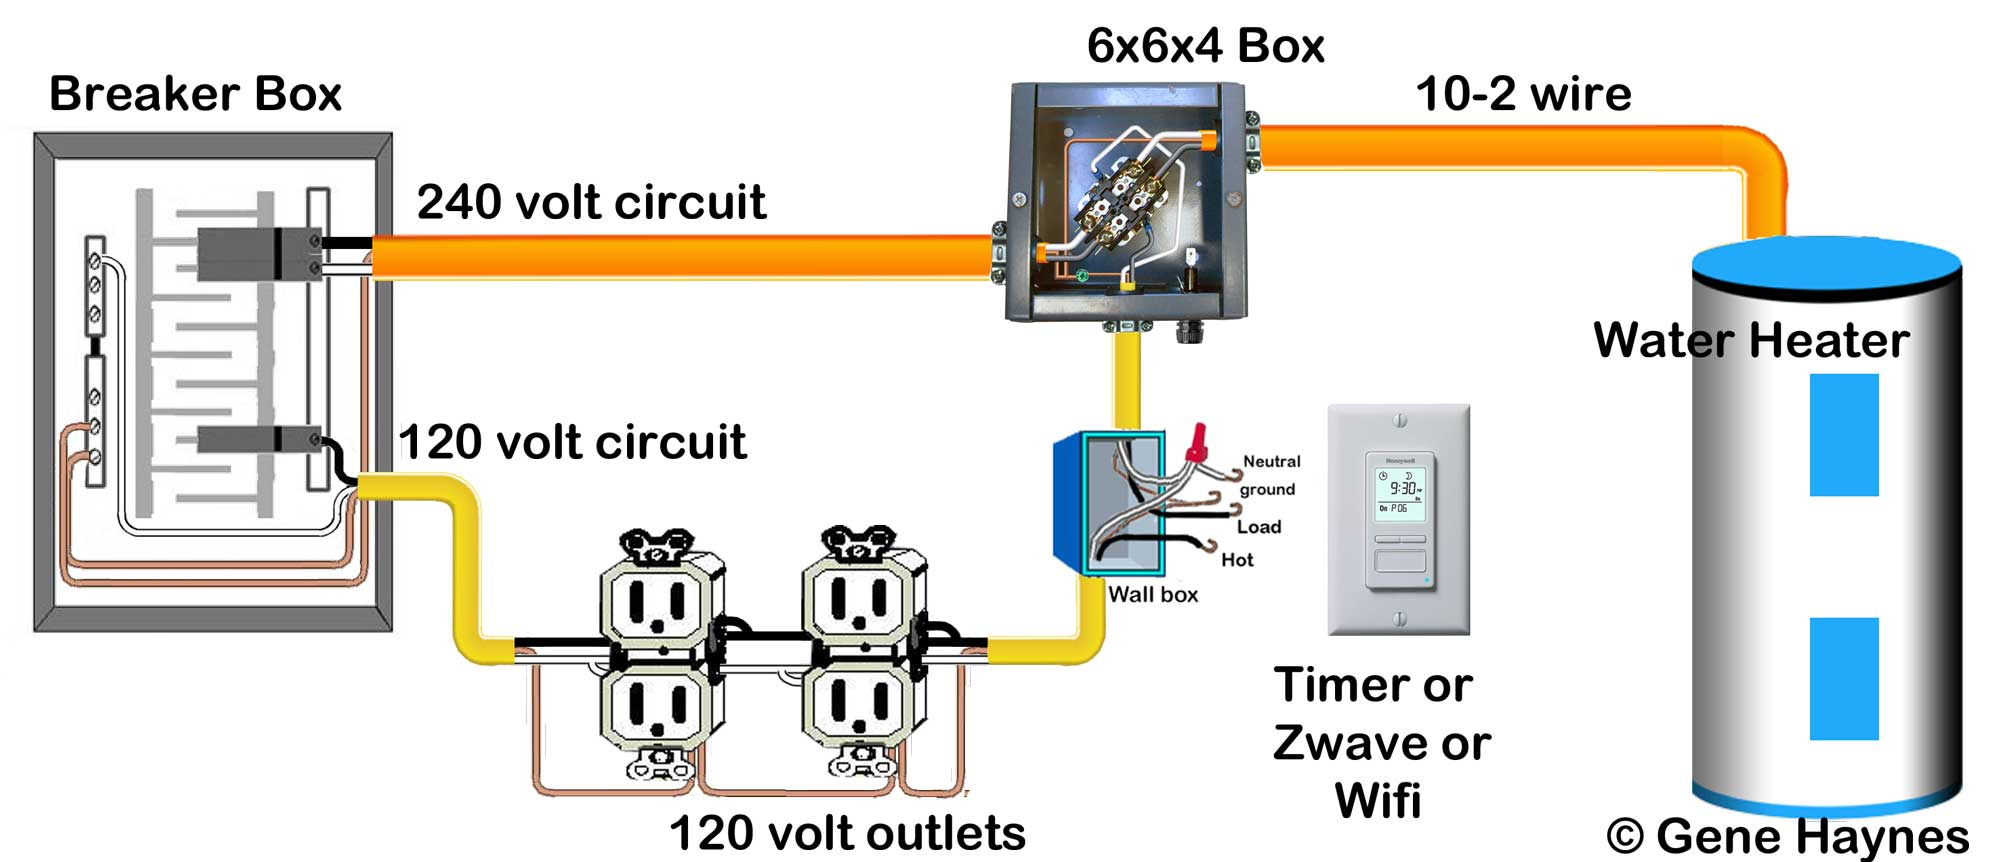 understanding the basic 120-240 volt ac circuit is important for electric  wiring